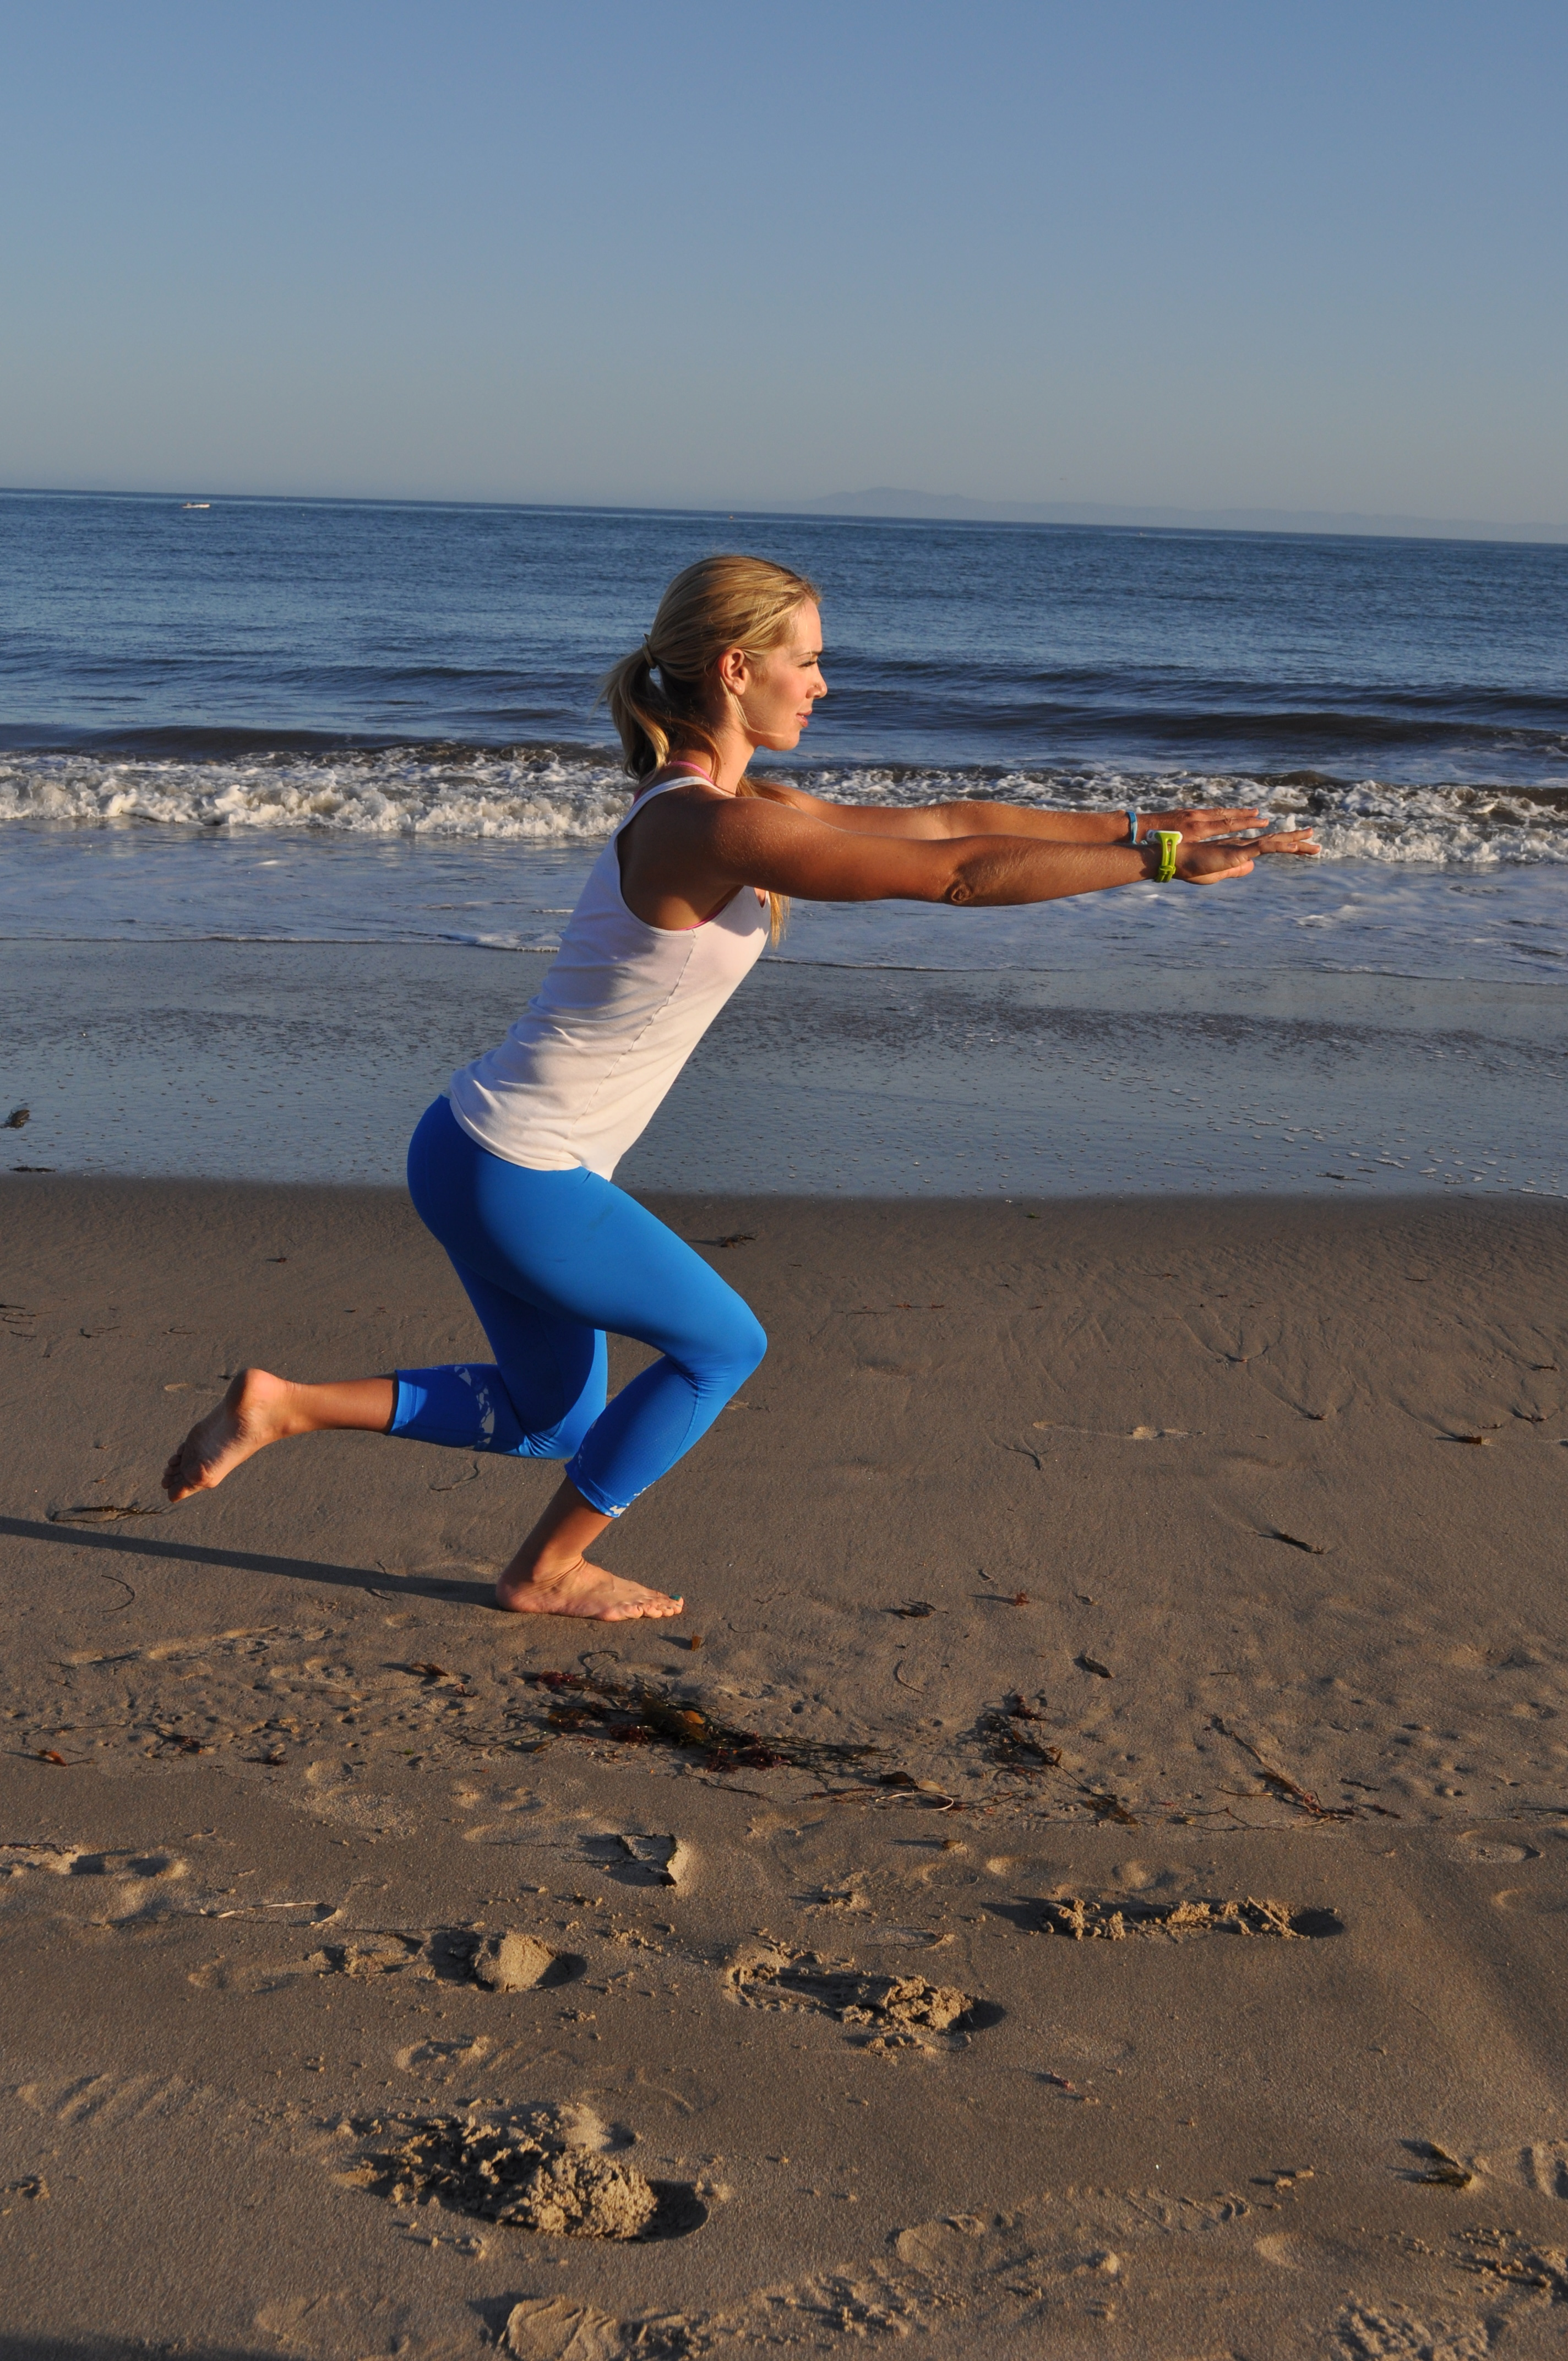 5 Exercises To Strengthen And Tone The Legs No Equipment Required Best Workout Circuit Bodyweight Leg 2014 09 10 Dsc 0884